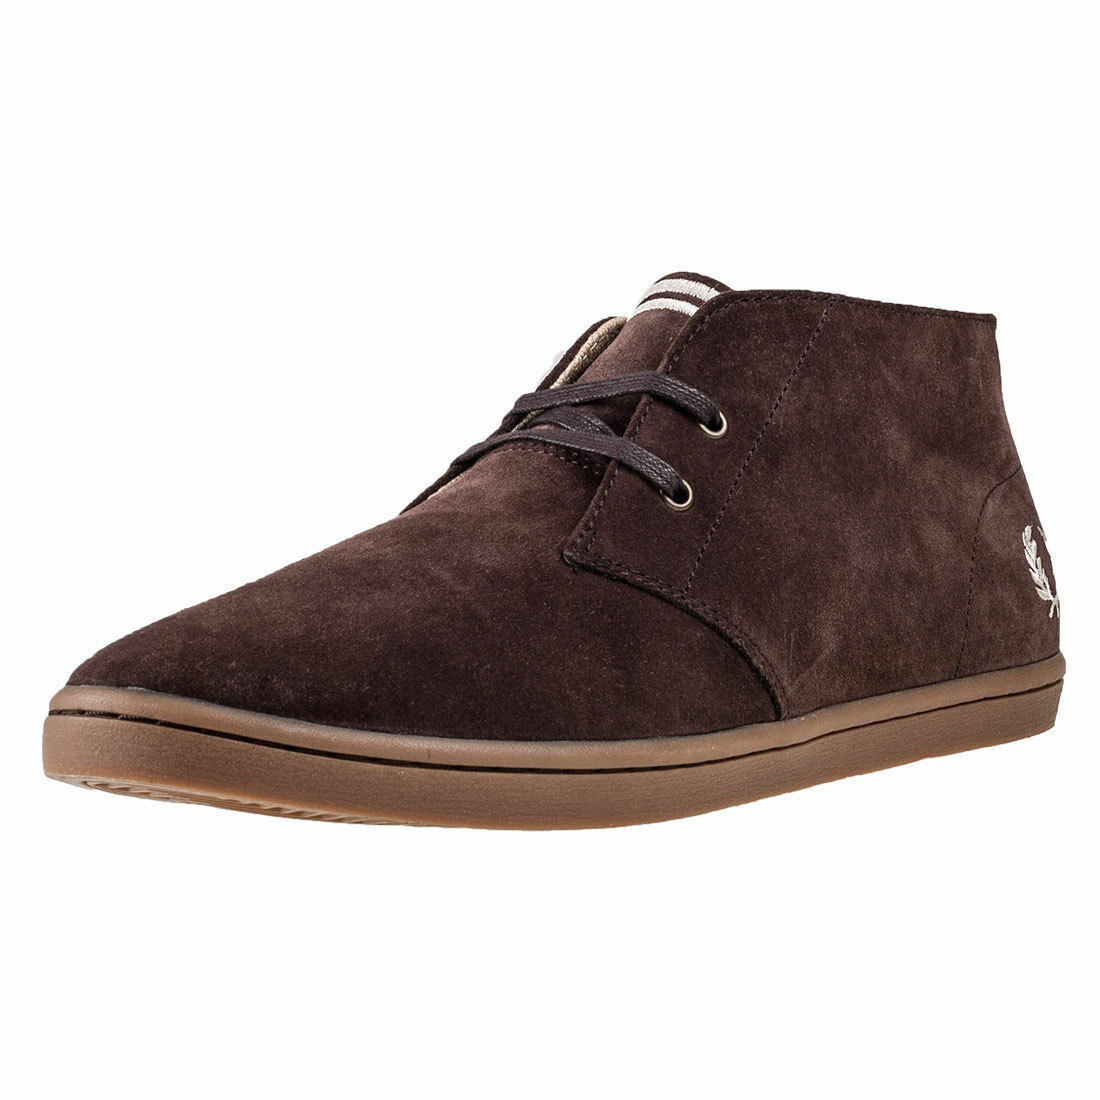 acheter pas cher 4fed9 497df Fred Perry Byron Mid Mens Chukka BOOTS Dark Chocolate Shoes 10 UK